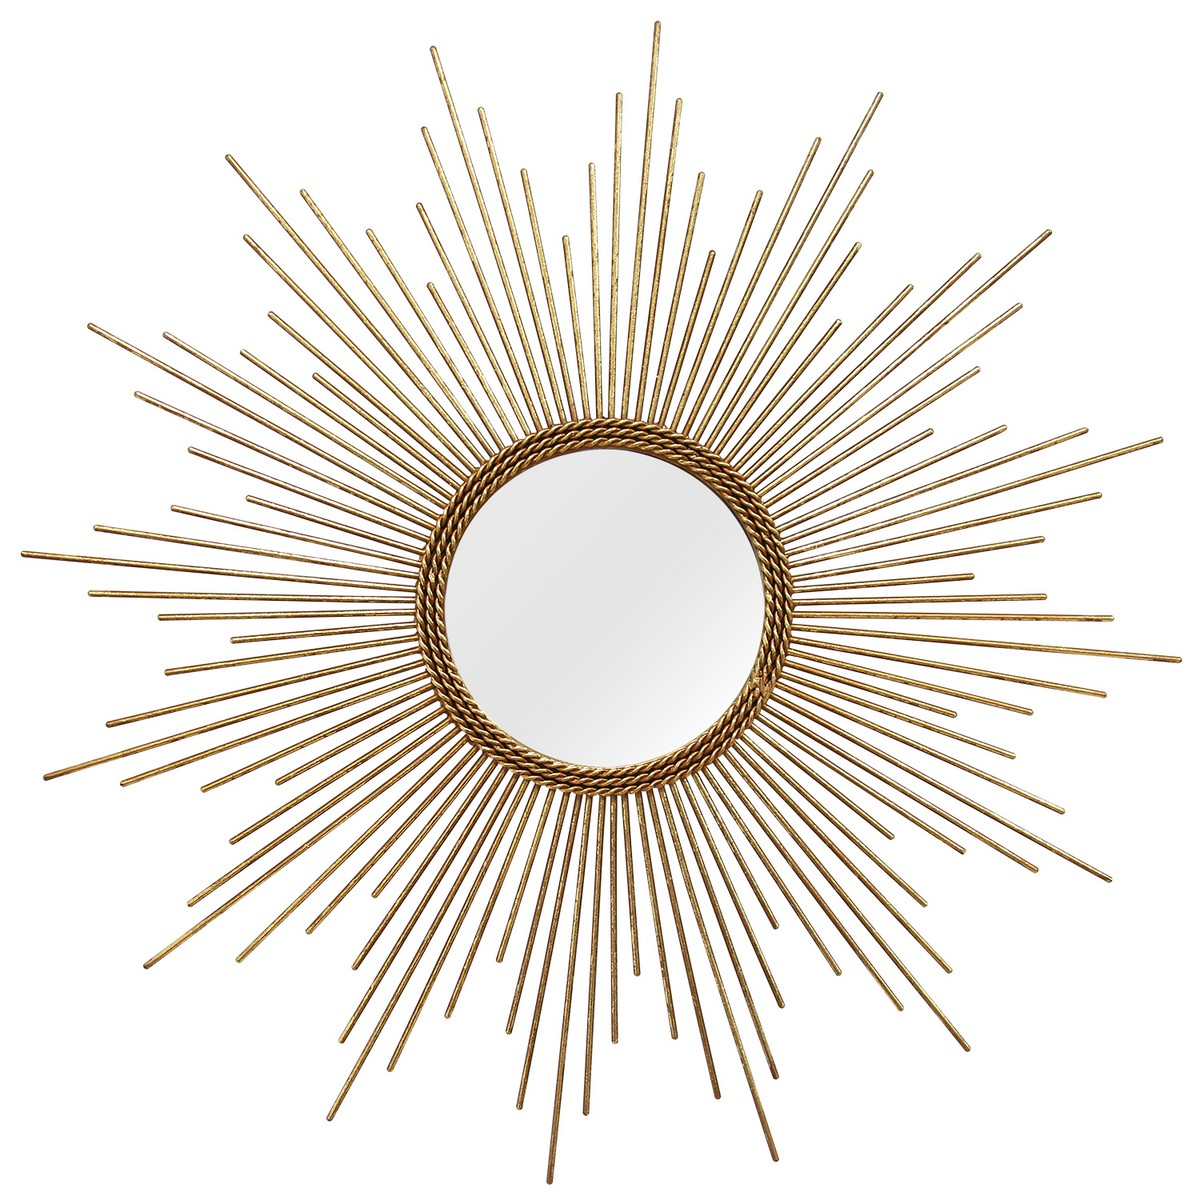 Stratton Home Decor Andrea Wall Mirror - Gold